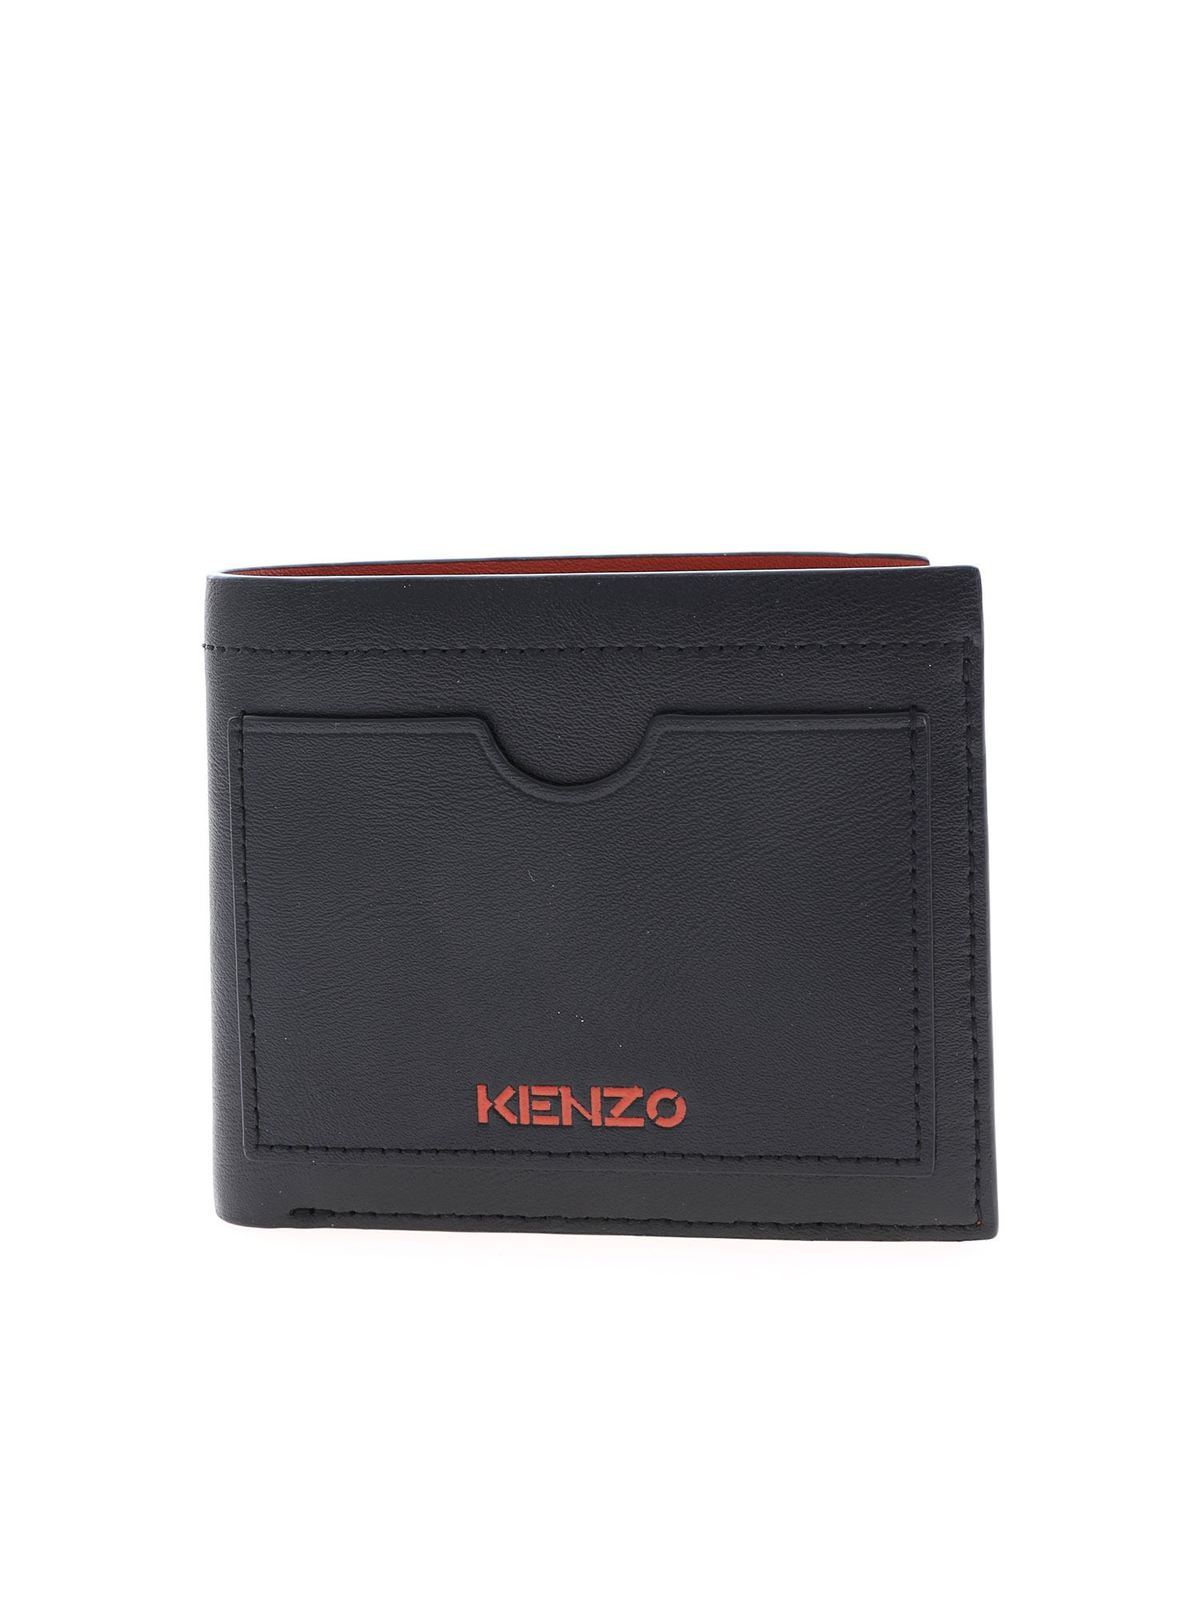 Kenzo Red Logo Wallet In Black